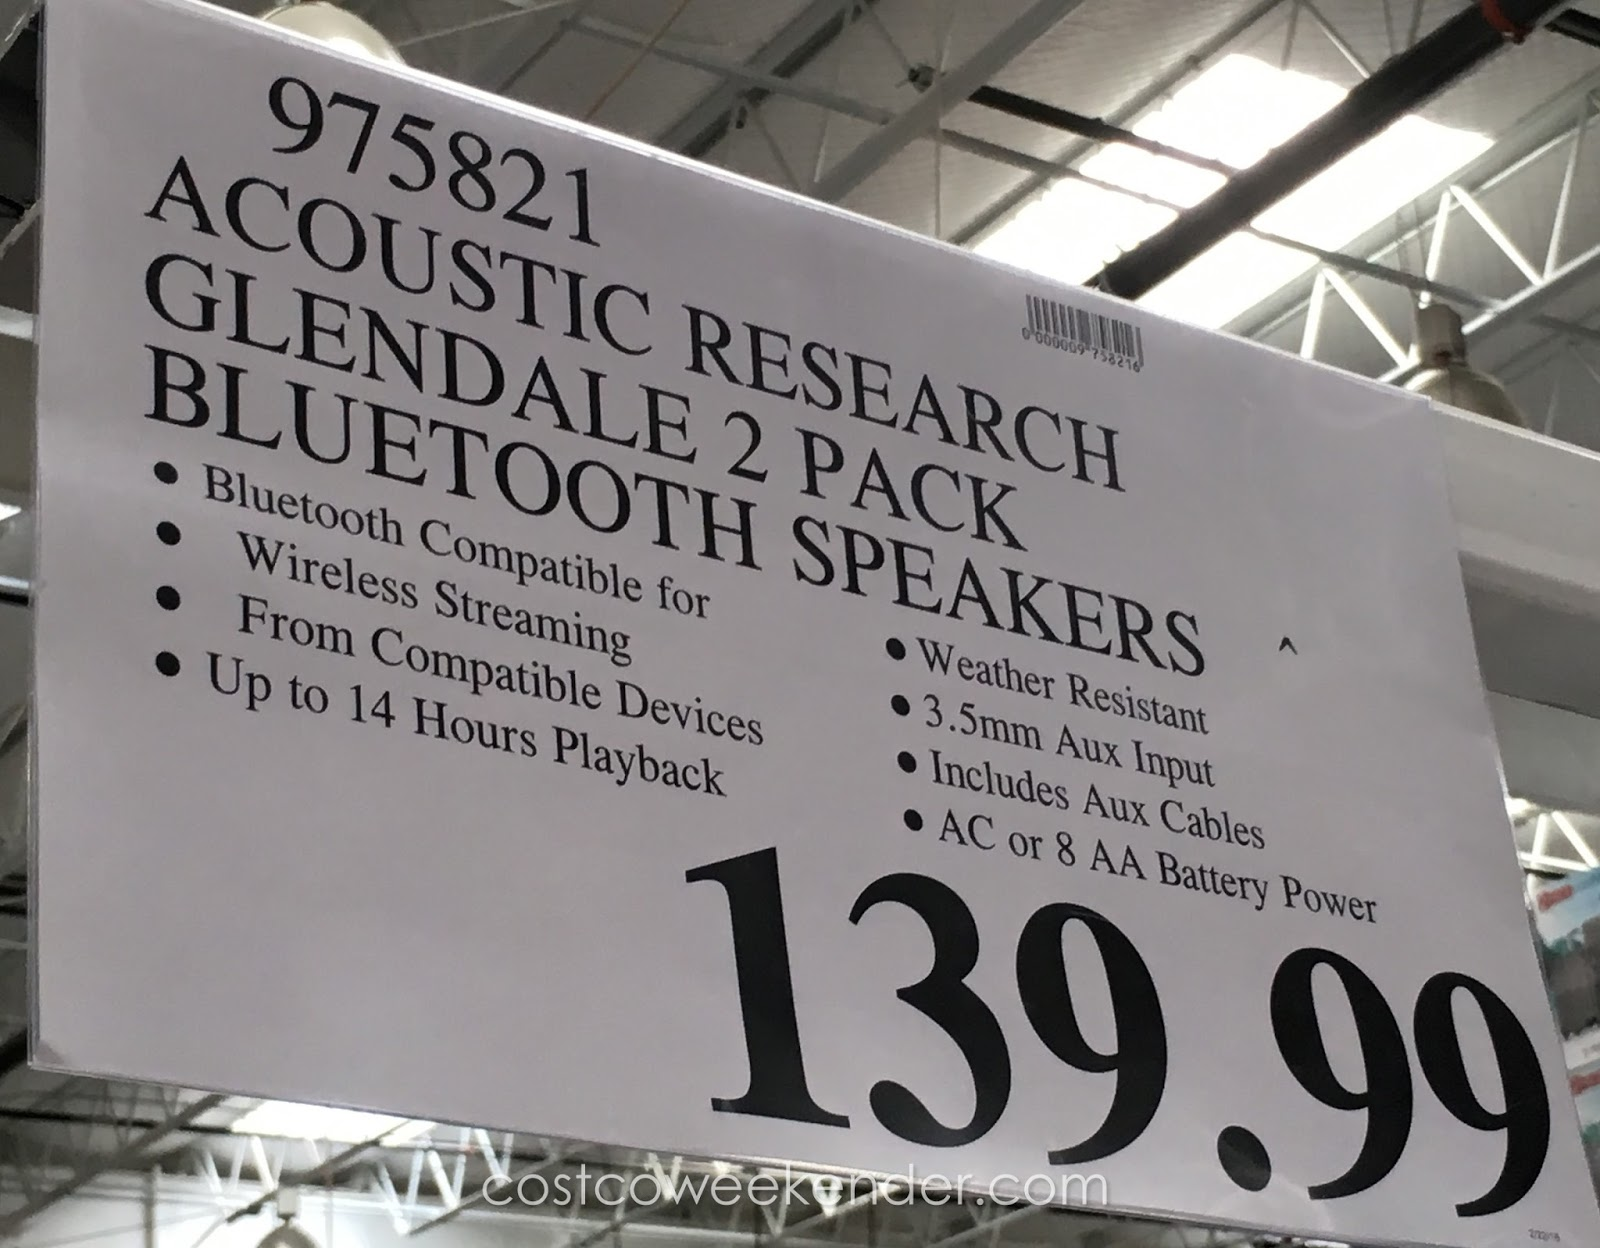 Deal For The Acoustic Research Glendale Bluetooth Speakers At Costco